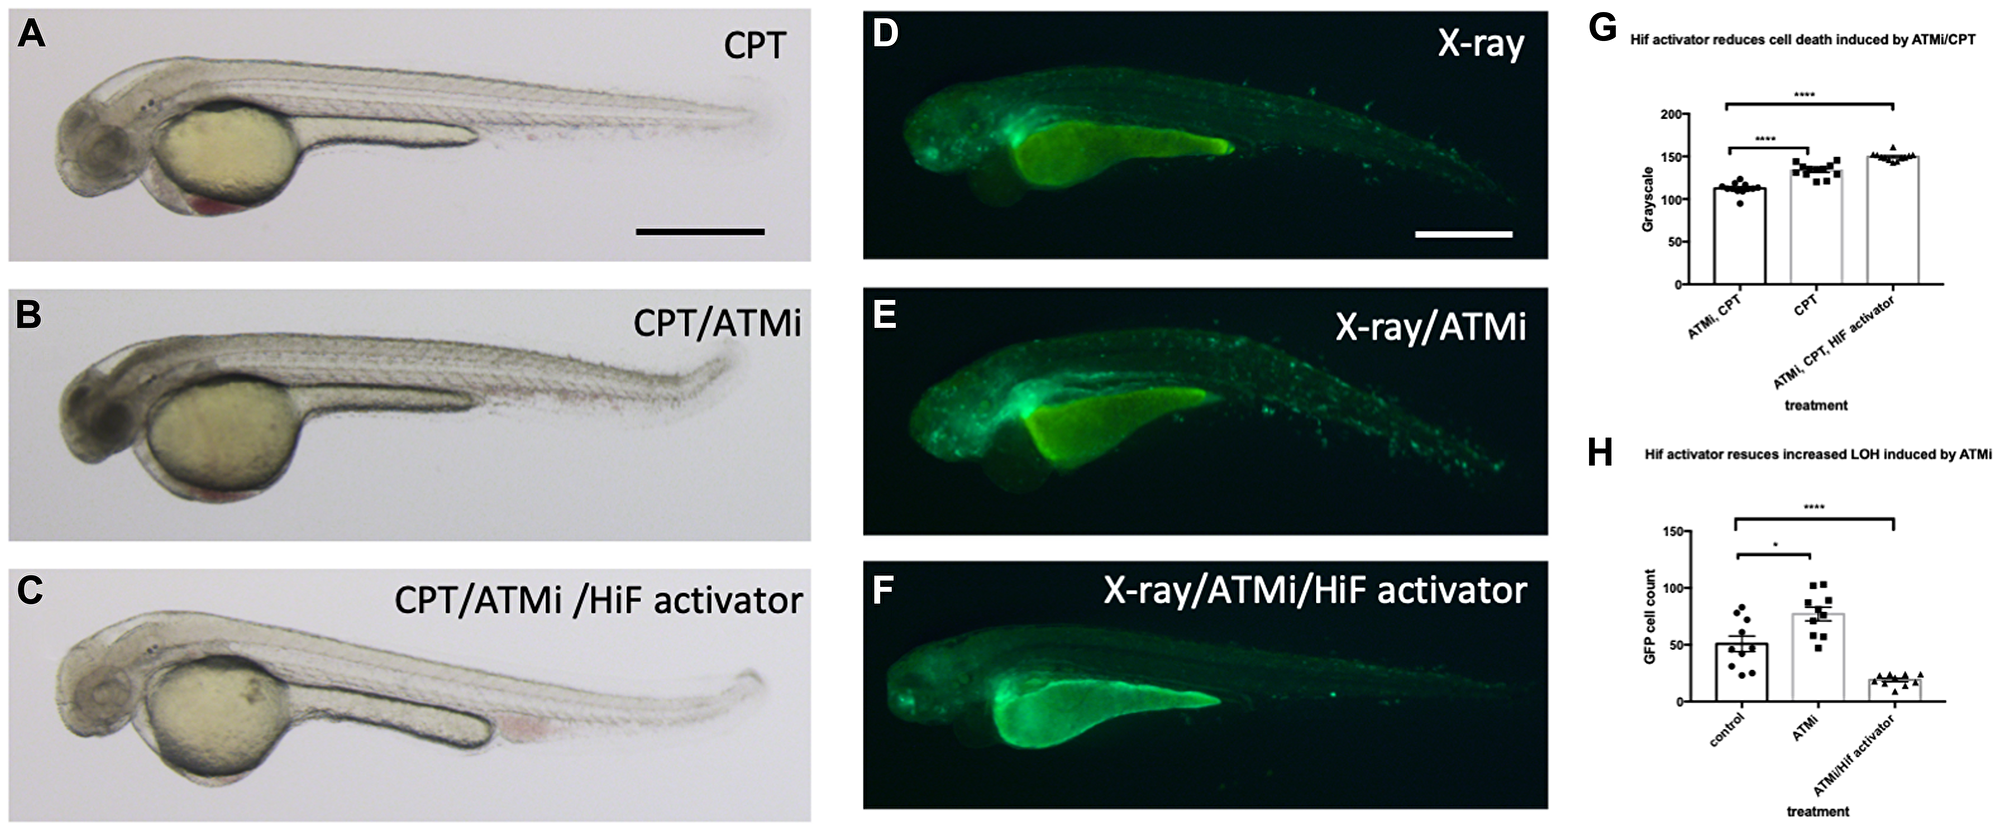 Hif activation abolishes the sensitivity to CPT induced cell death in ATM inhibitor treated embryos.